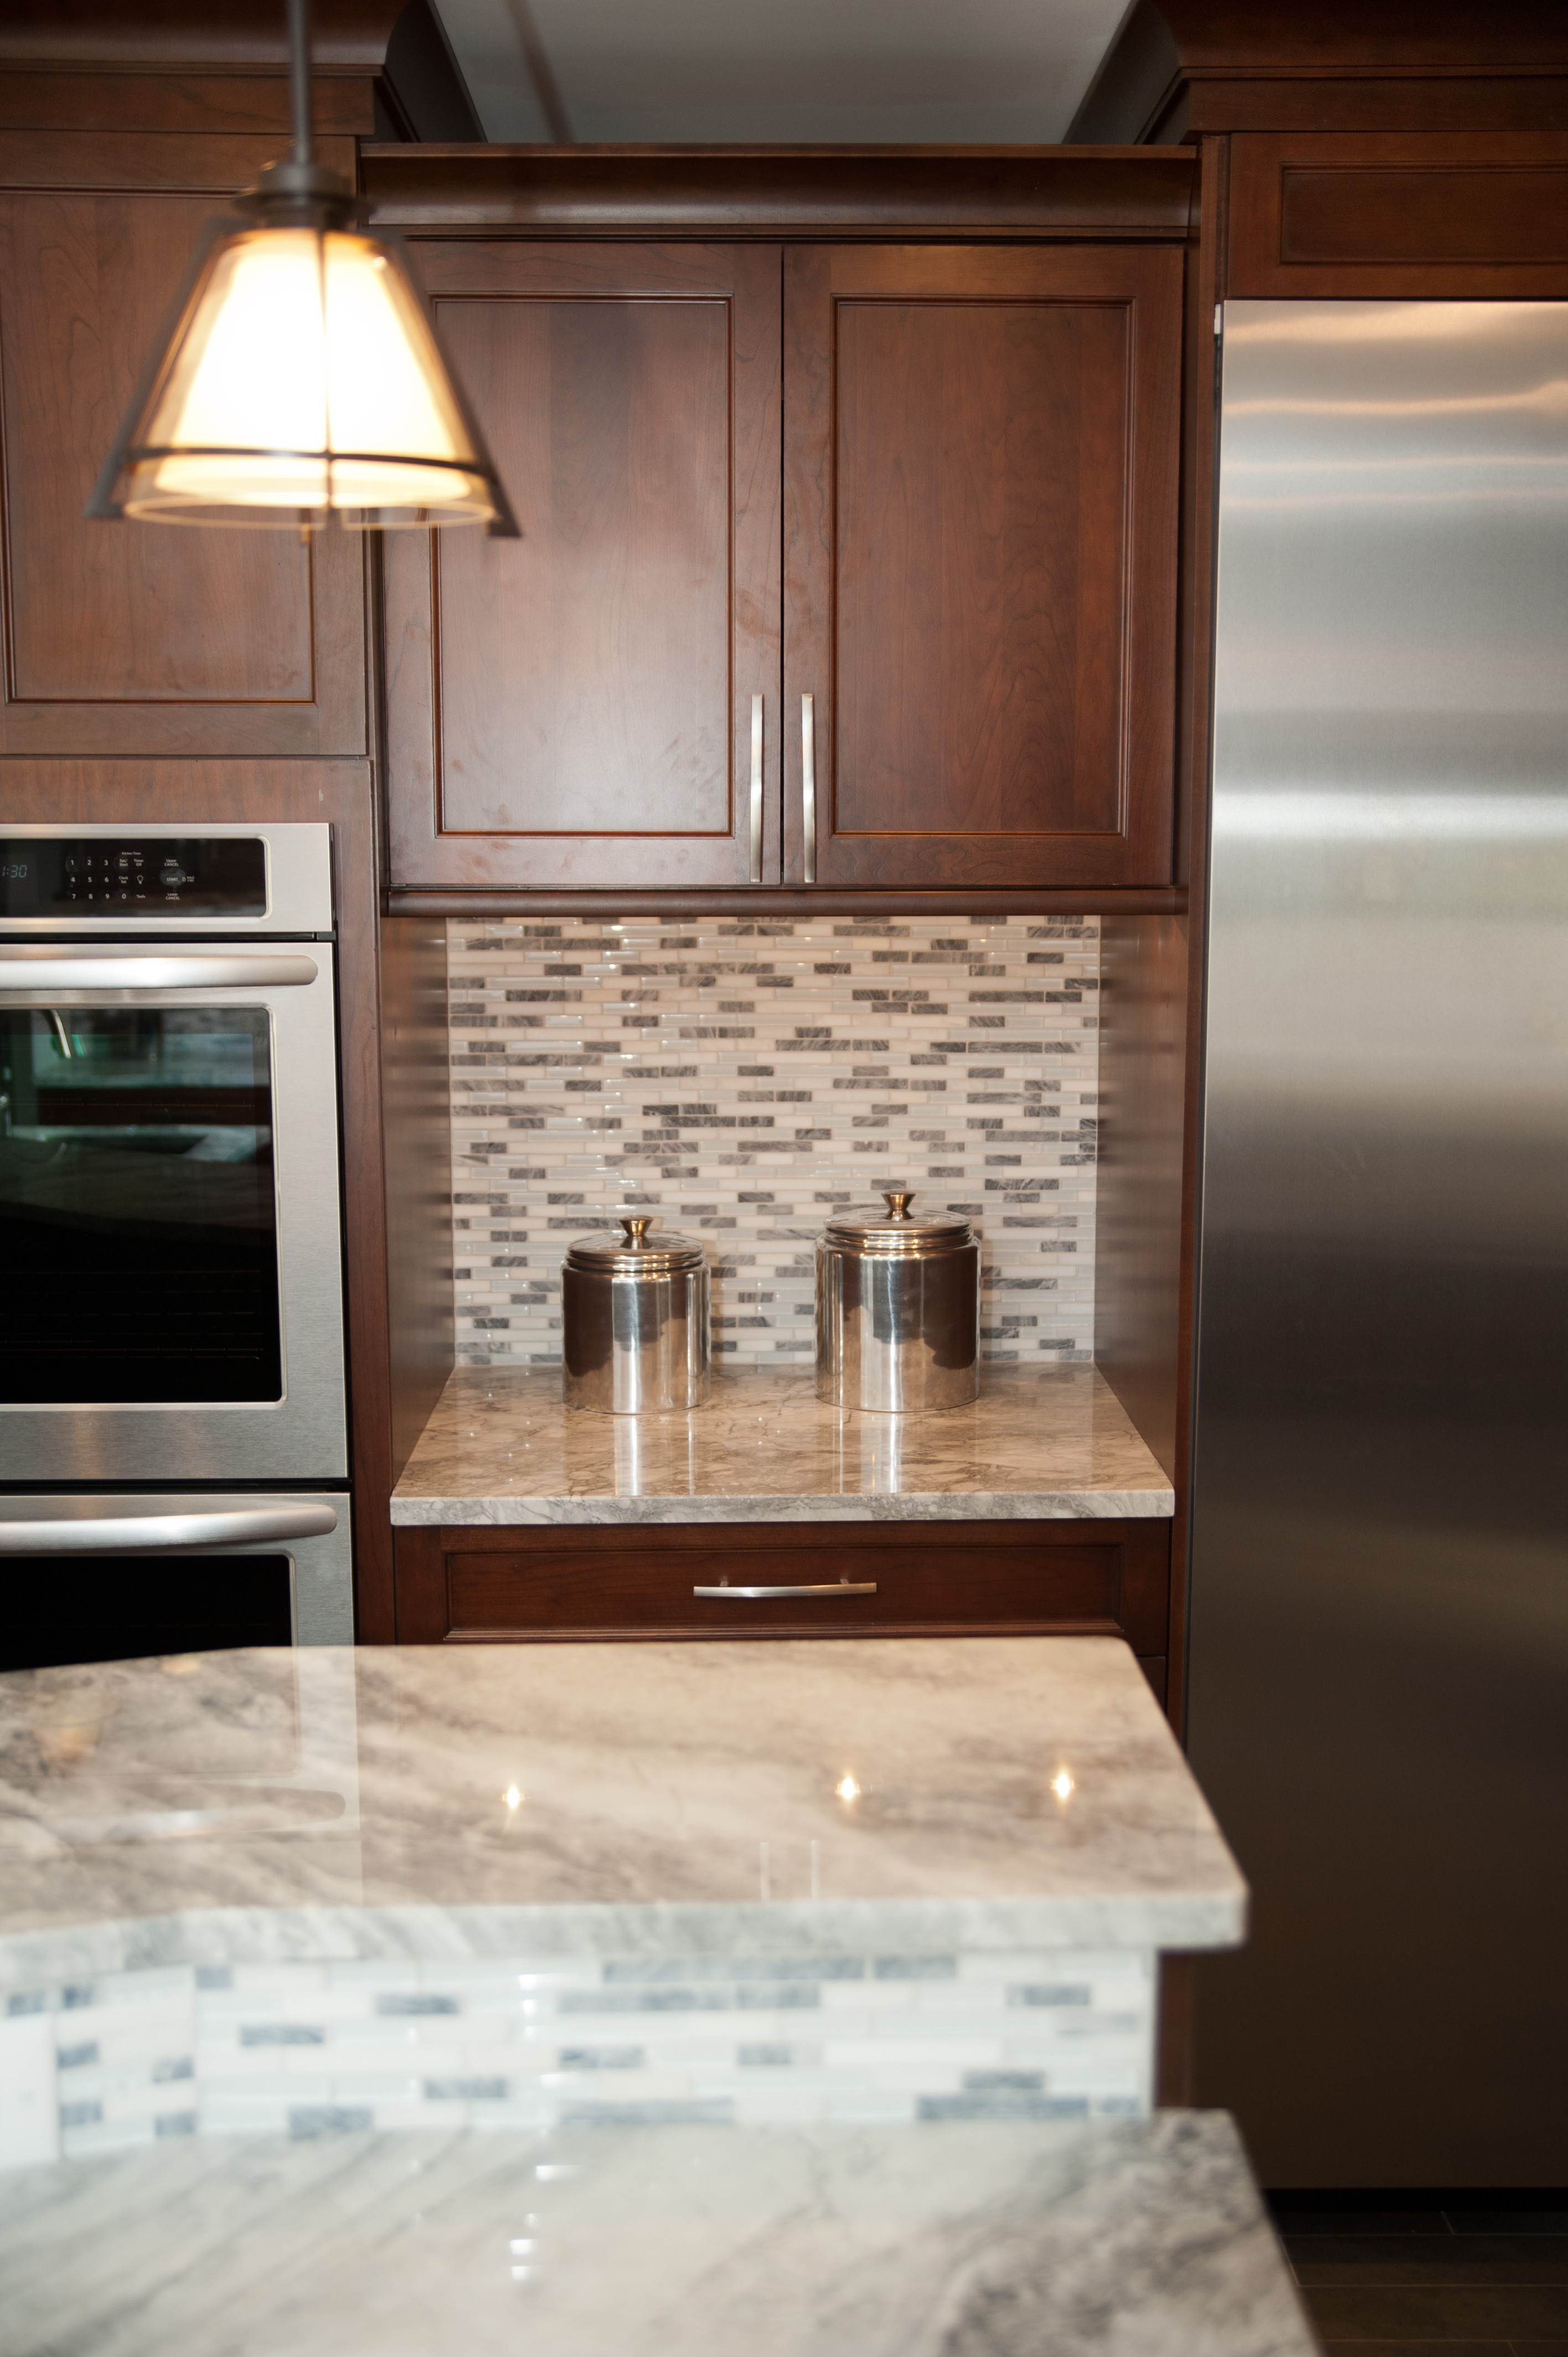 UltraCraft Cabinetry - Design Build Planners on rustic knotty alder kitchen cabinets, whitewashed kitchen cabinets, koch kitchen cabinets, formica kitchen cabinets,